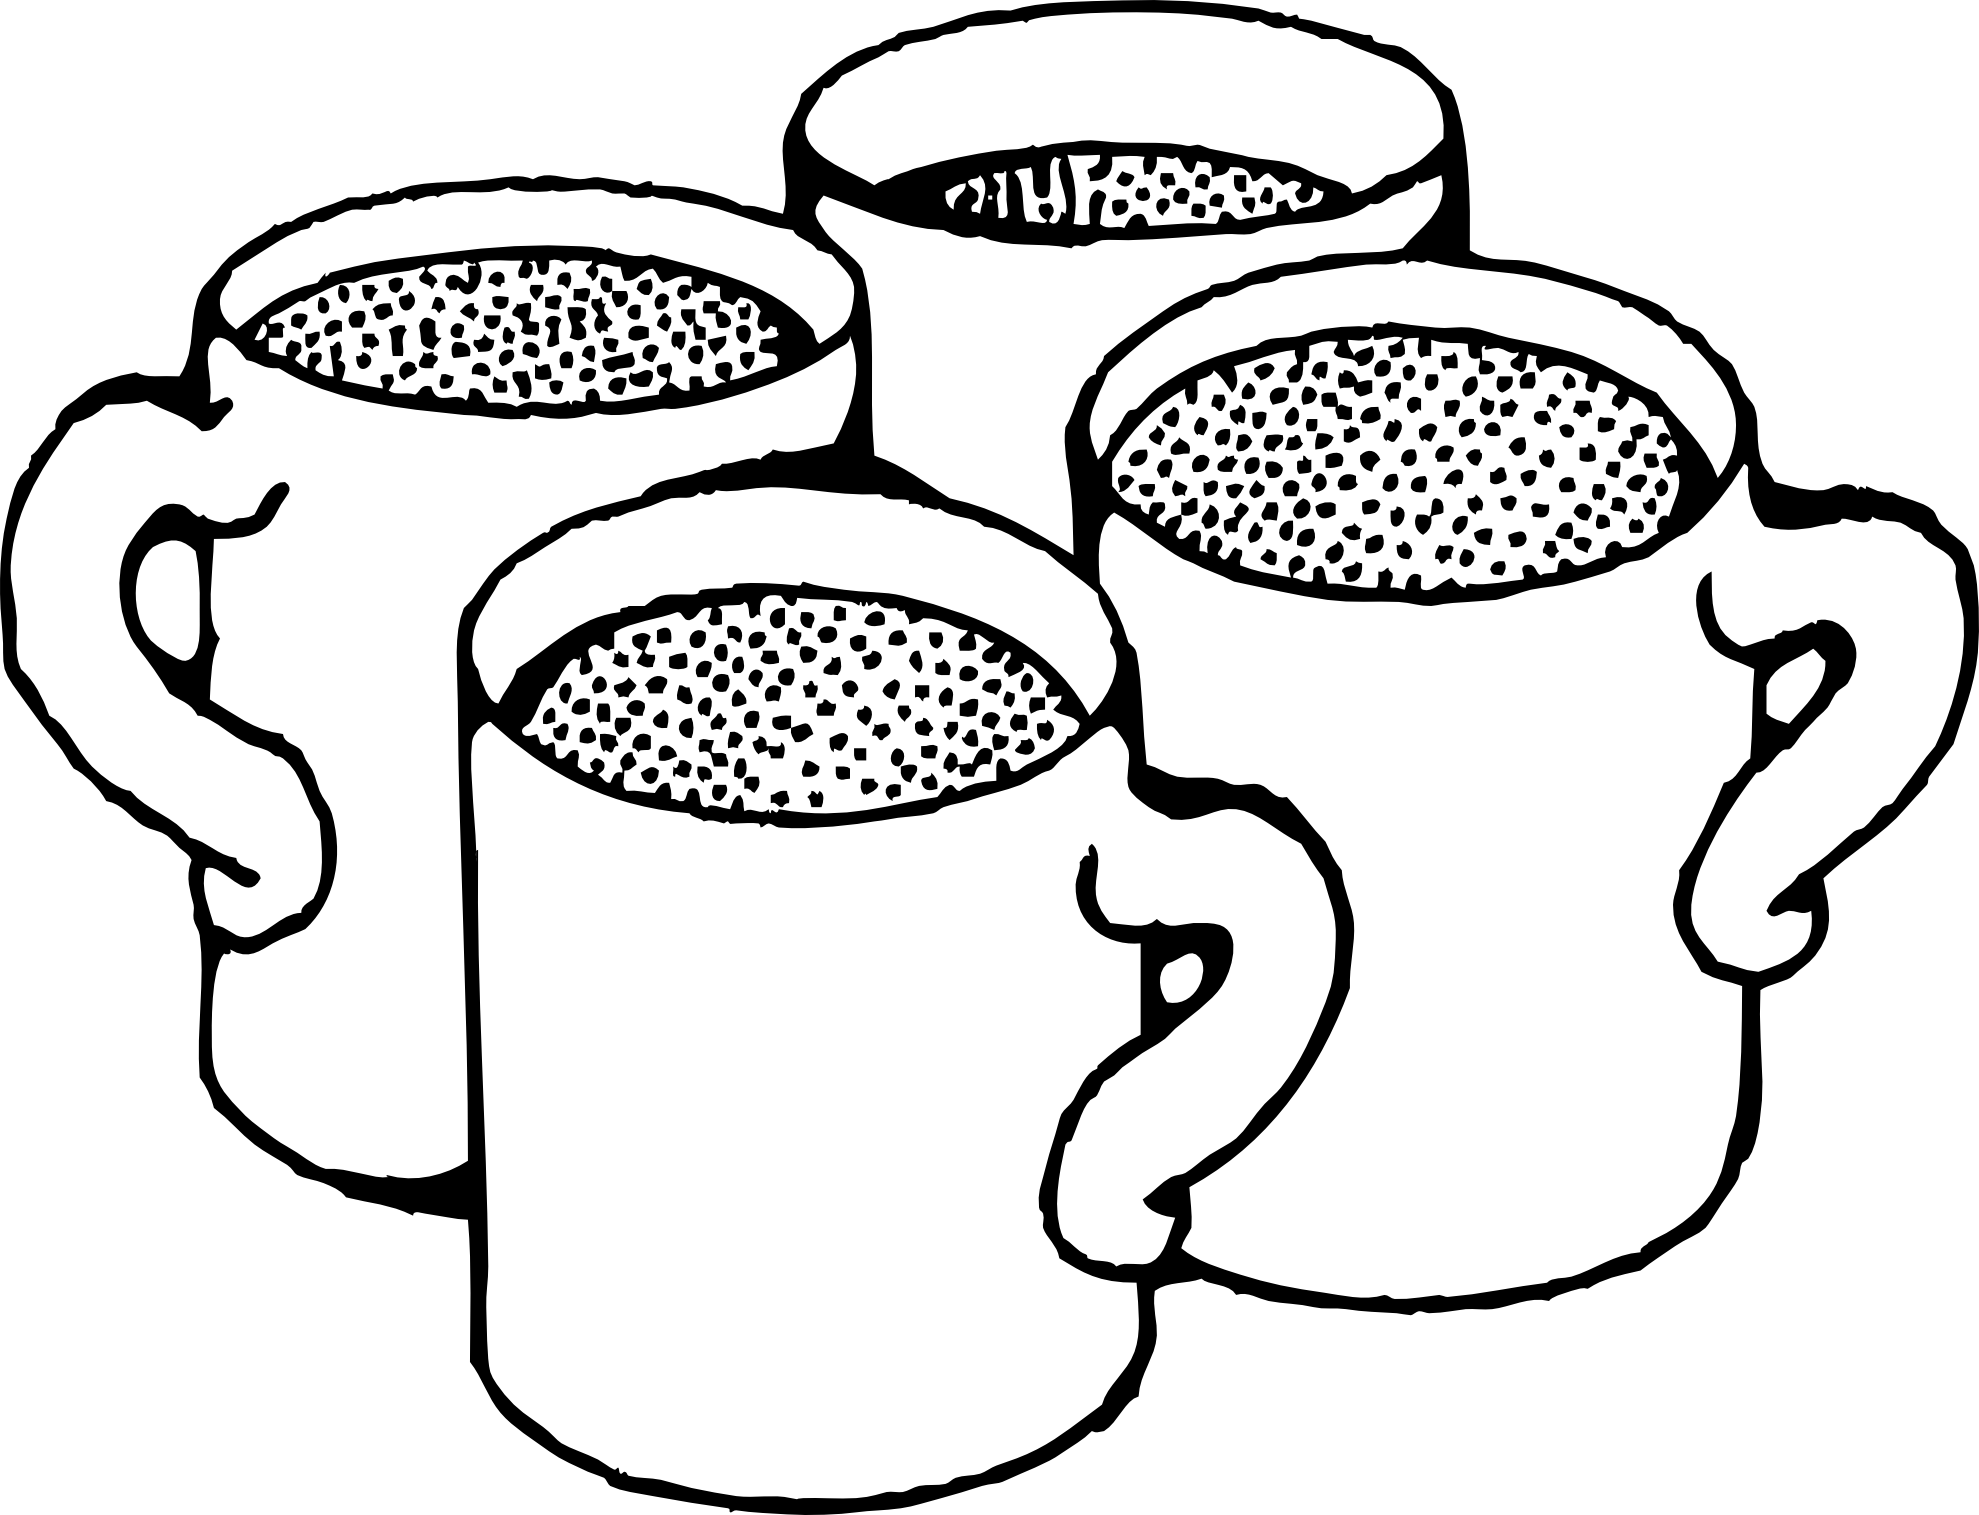 Coffee cup clipart outline. Clip art black white